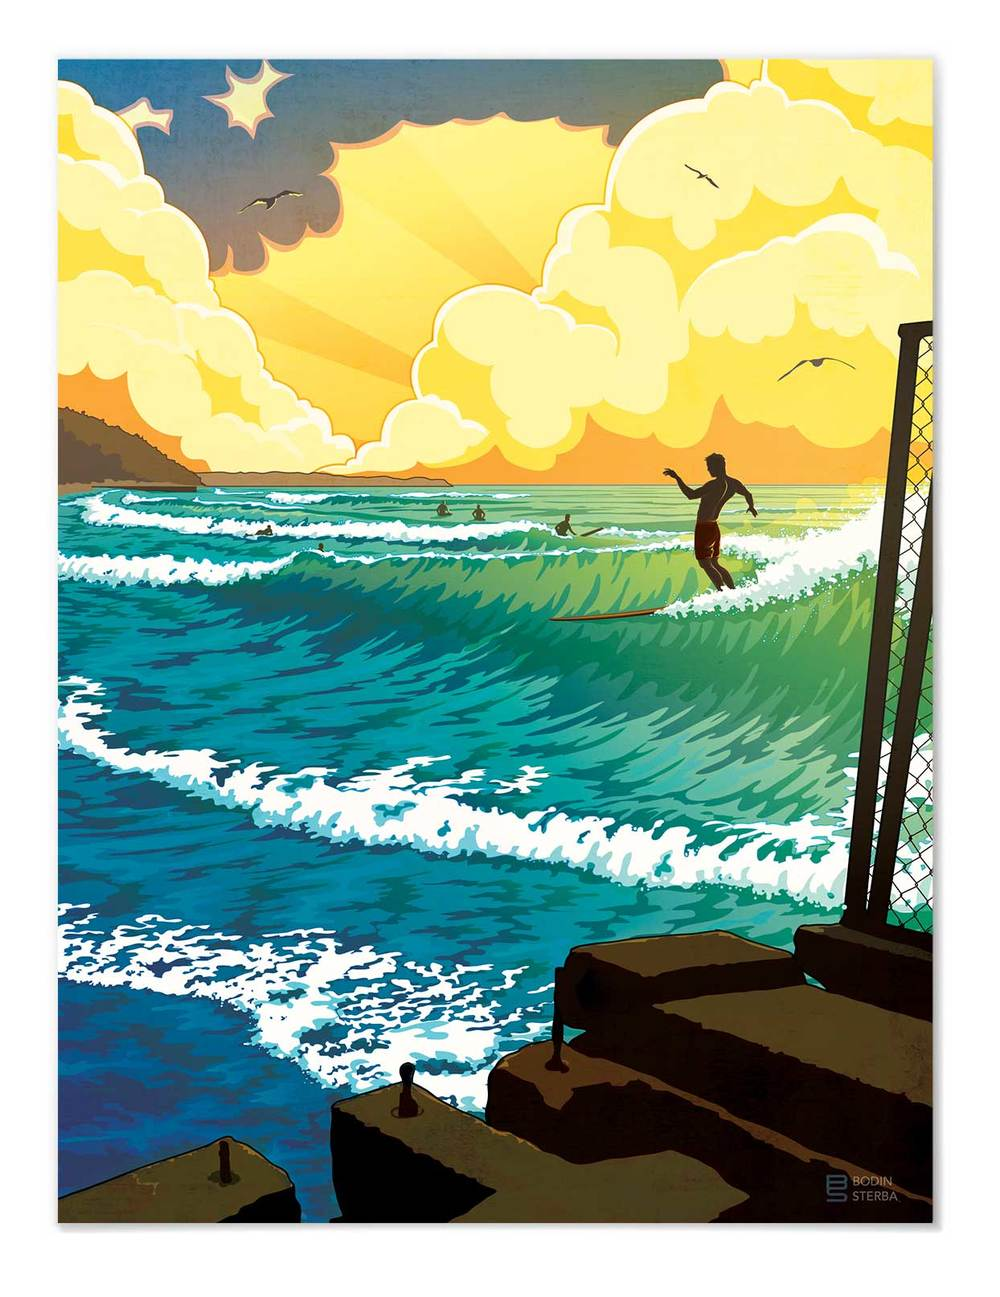 Surf@Water_Poster_2014_12x16_A.jpg